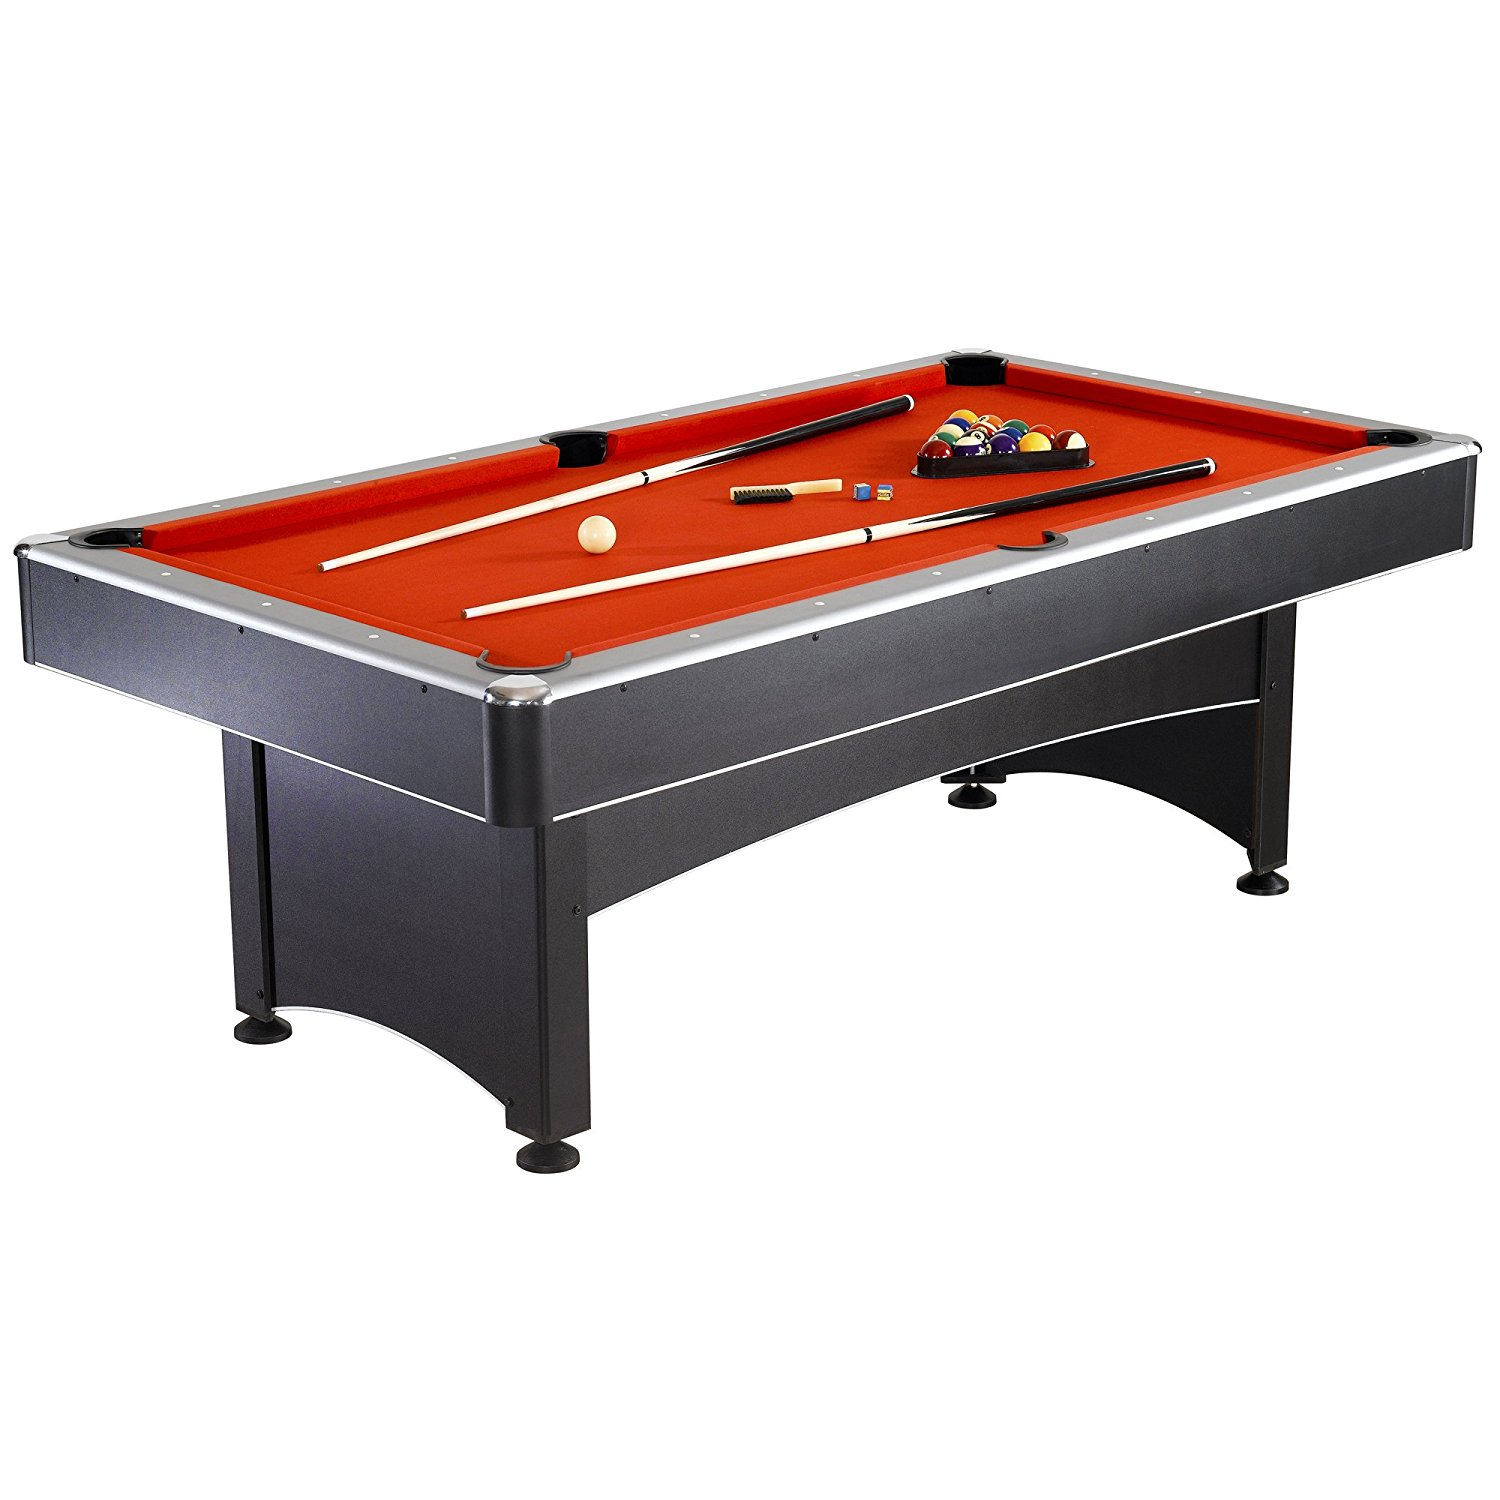 Top 10 best outdoor pool table in 2018 for 10 pool table